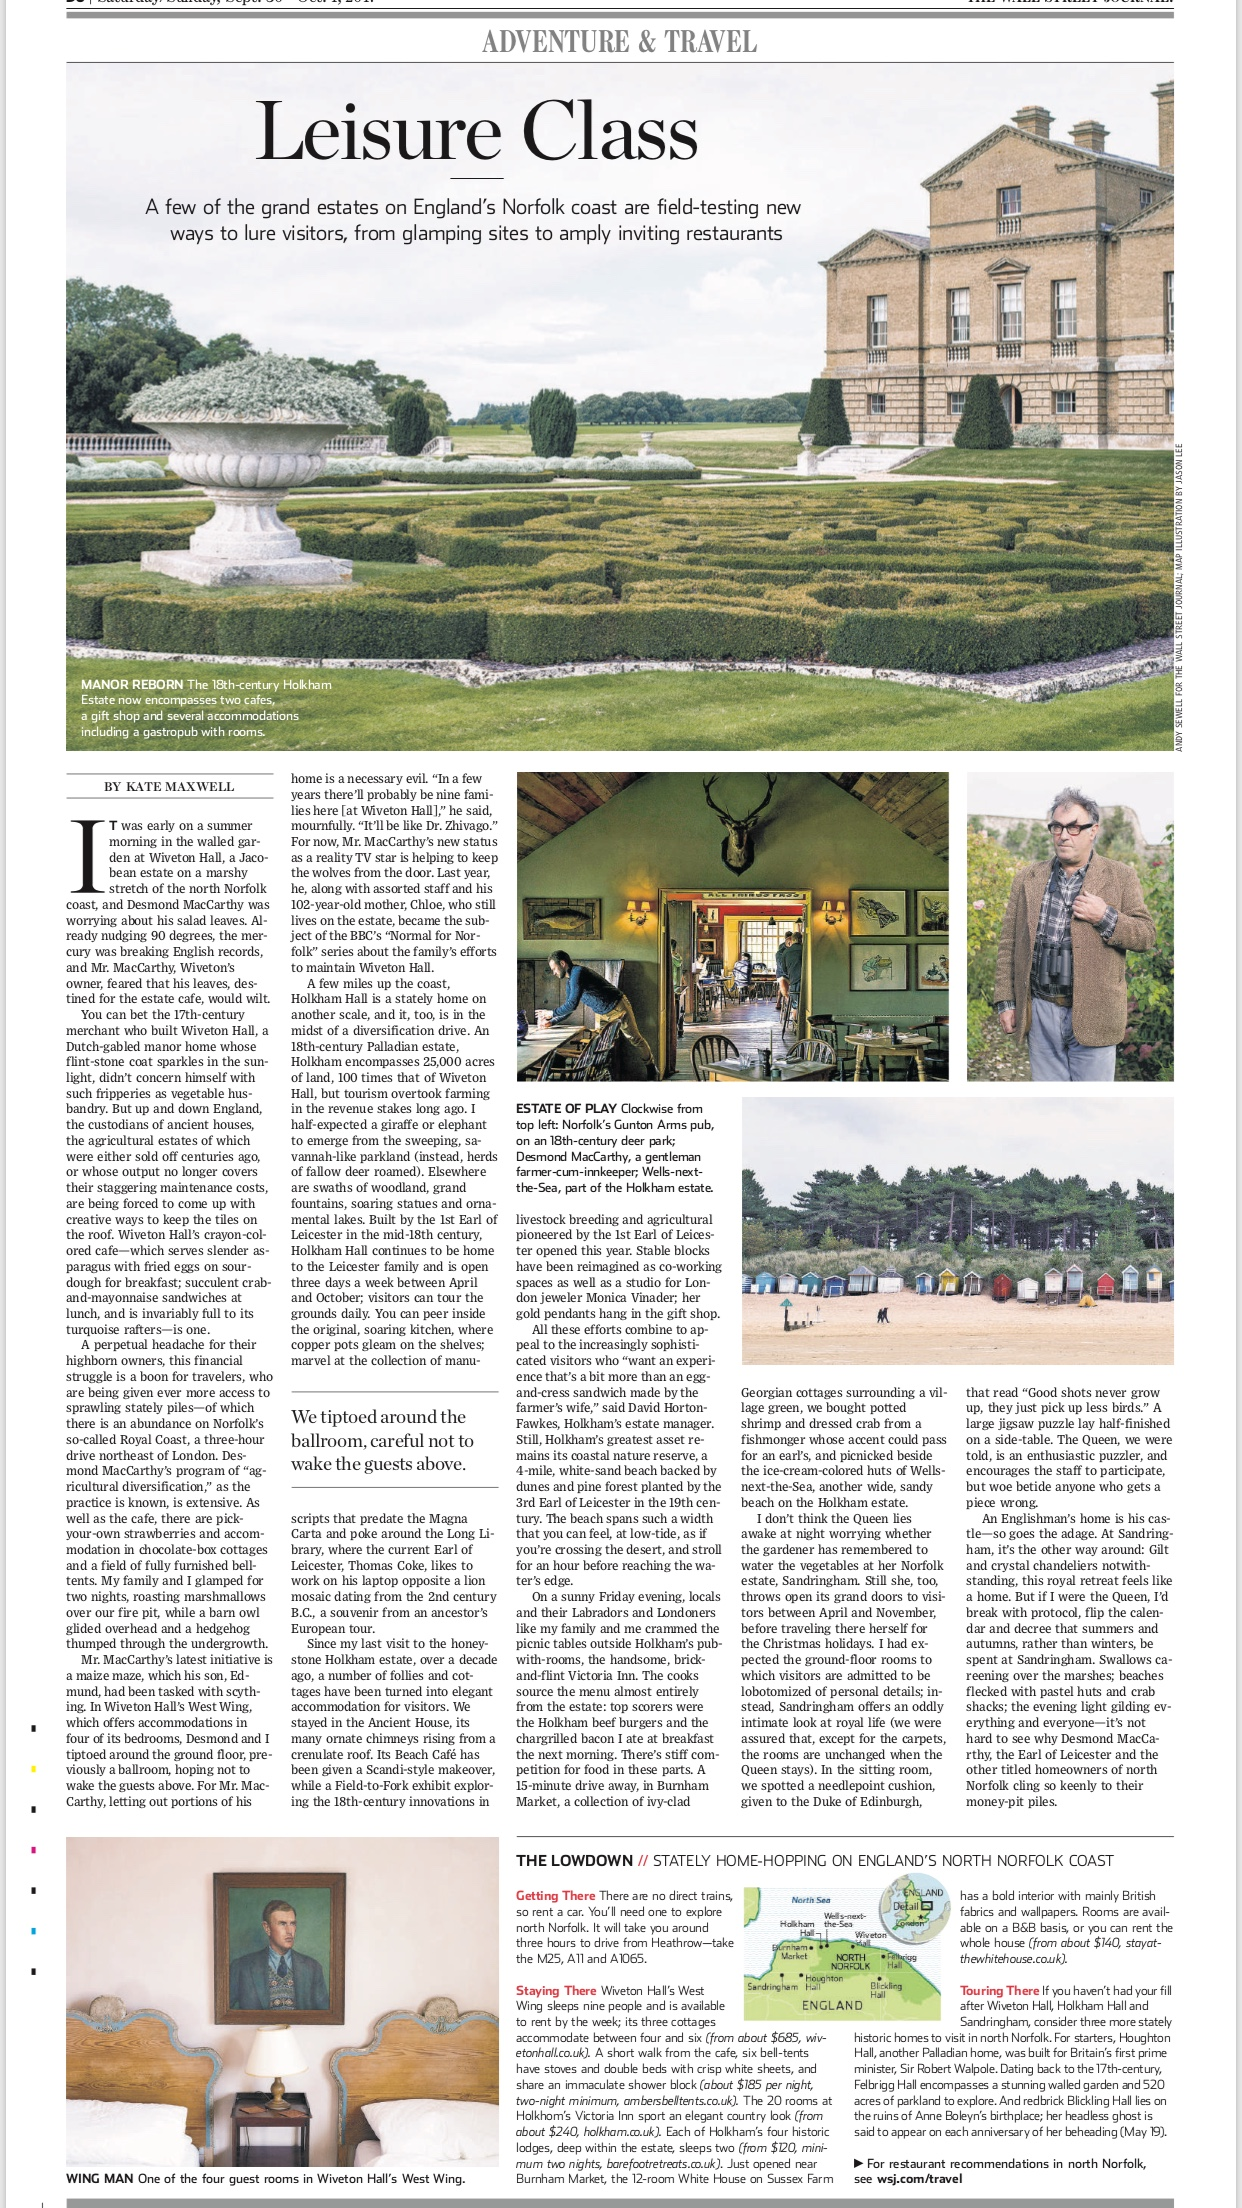 Appeared in the September 29, 2017, print edition of the Wall Street Journal. On WSJ digital titled 'Live Like an Aristocrat on a Tour of England's Stately Homes'.